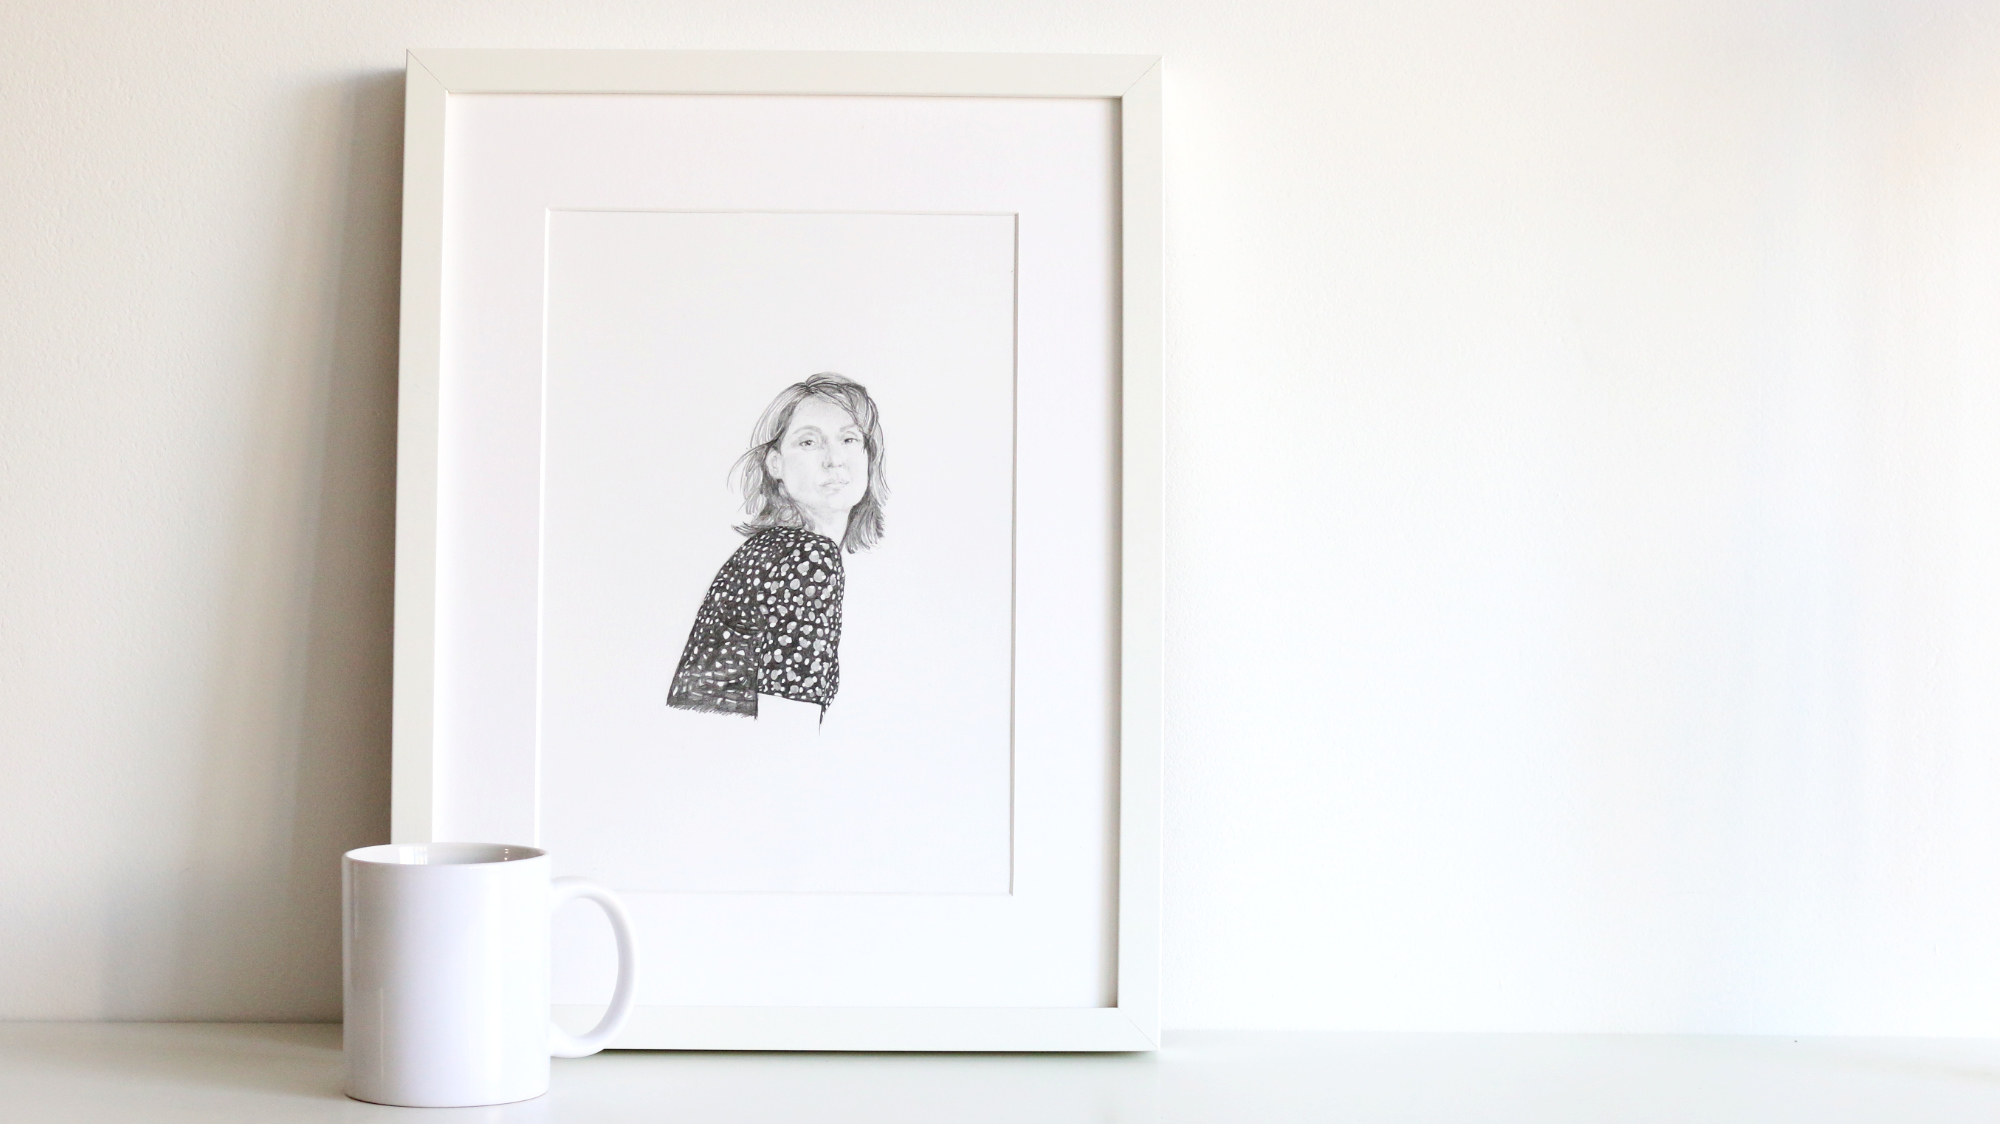 The final drawing is ready to frame or gift |  Self-Portrait in a Dotted Dress , by The Daily Atelier